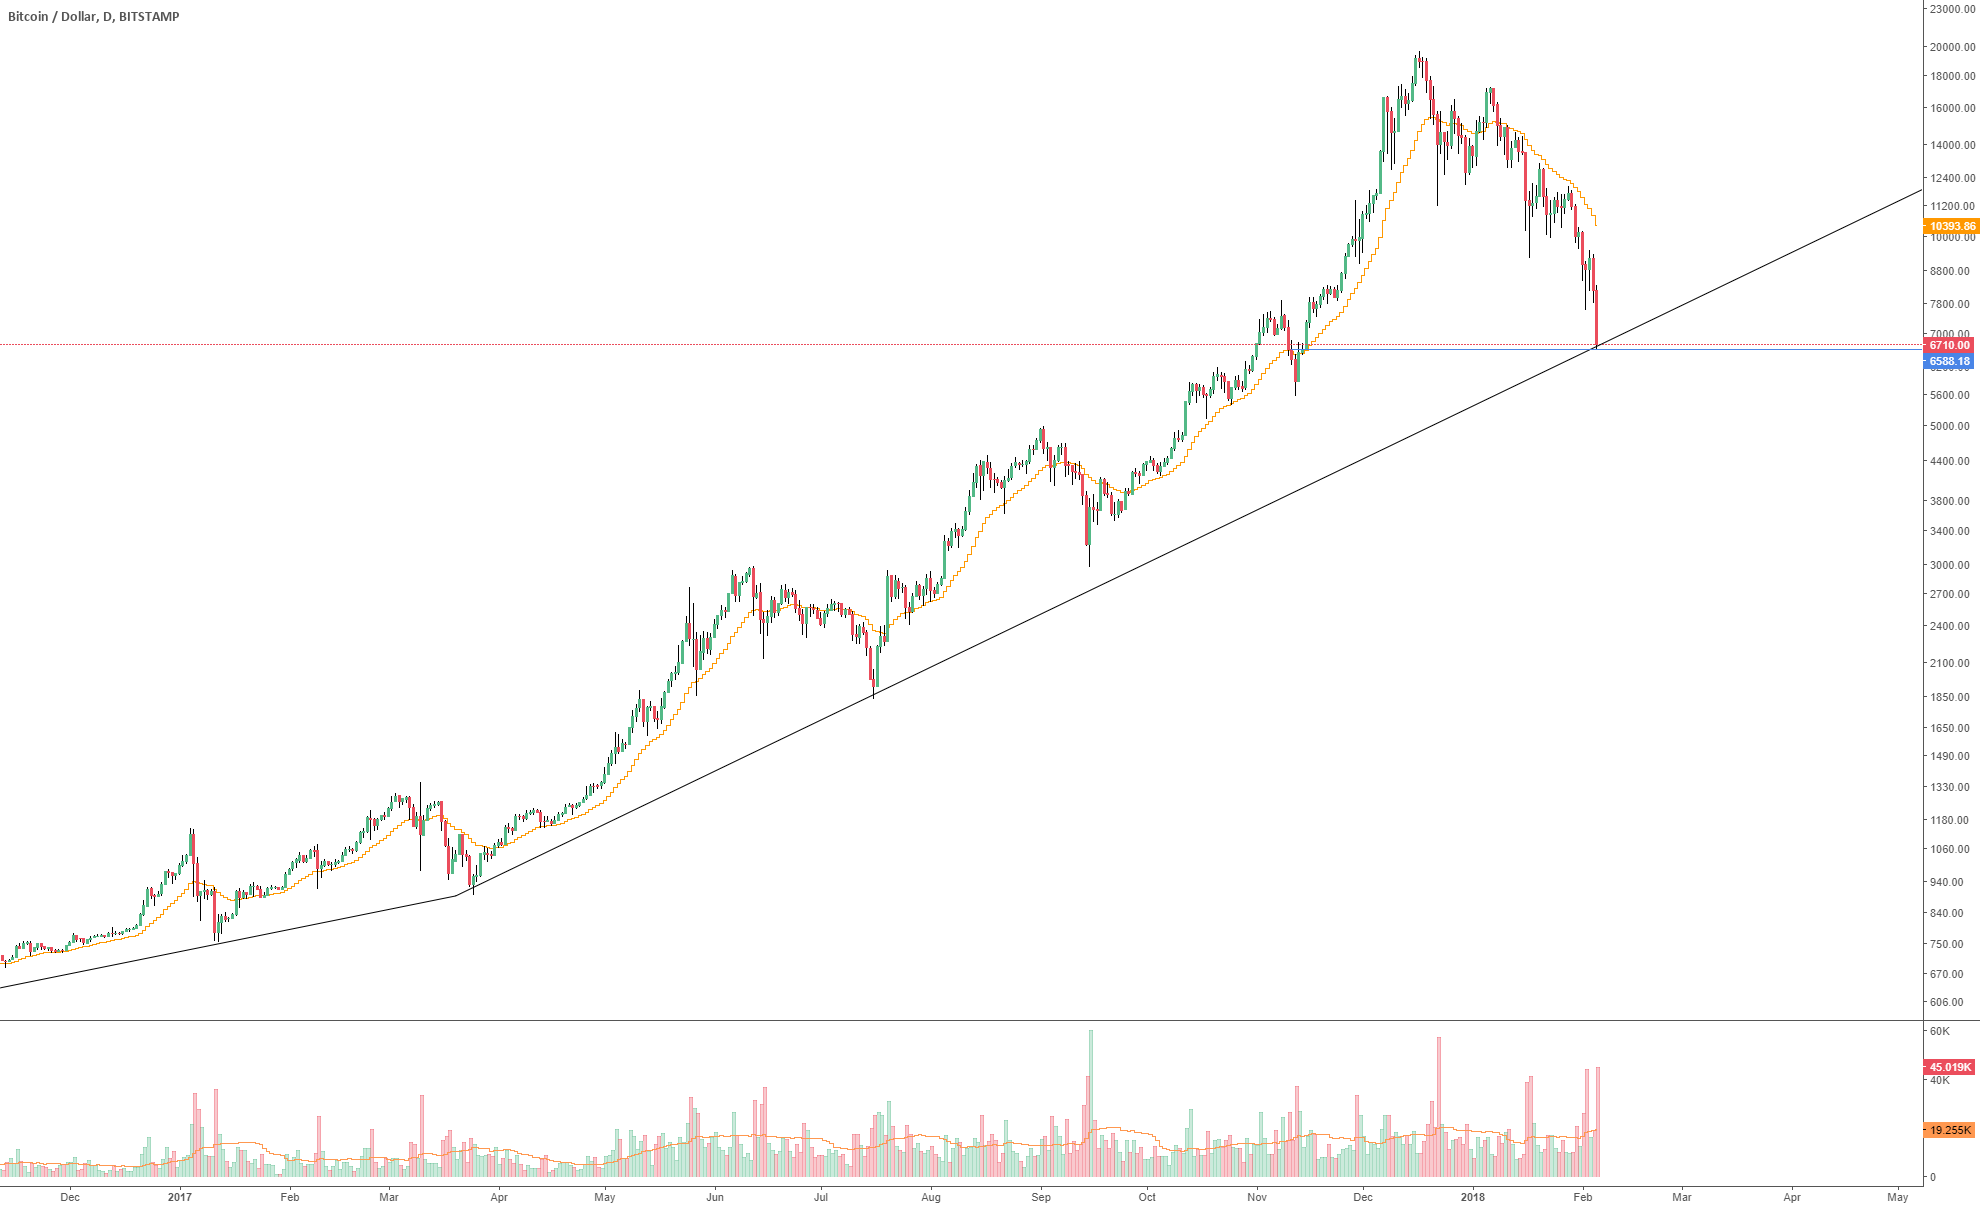 Short or even long term bottom on BTC